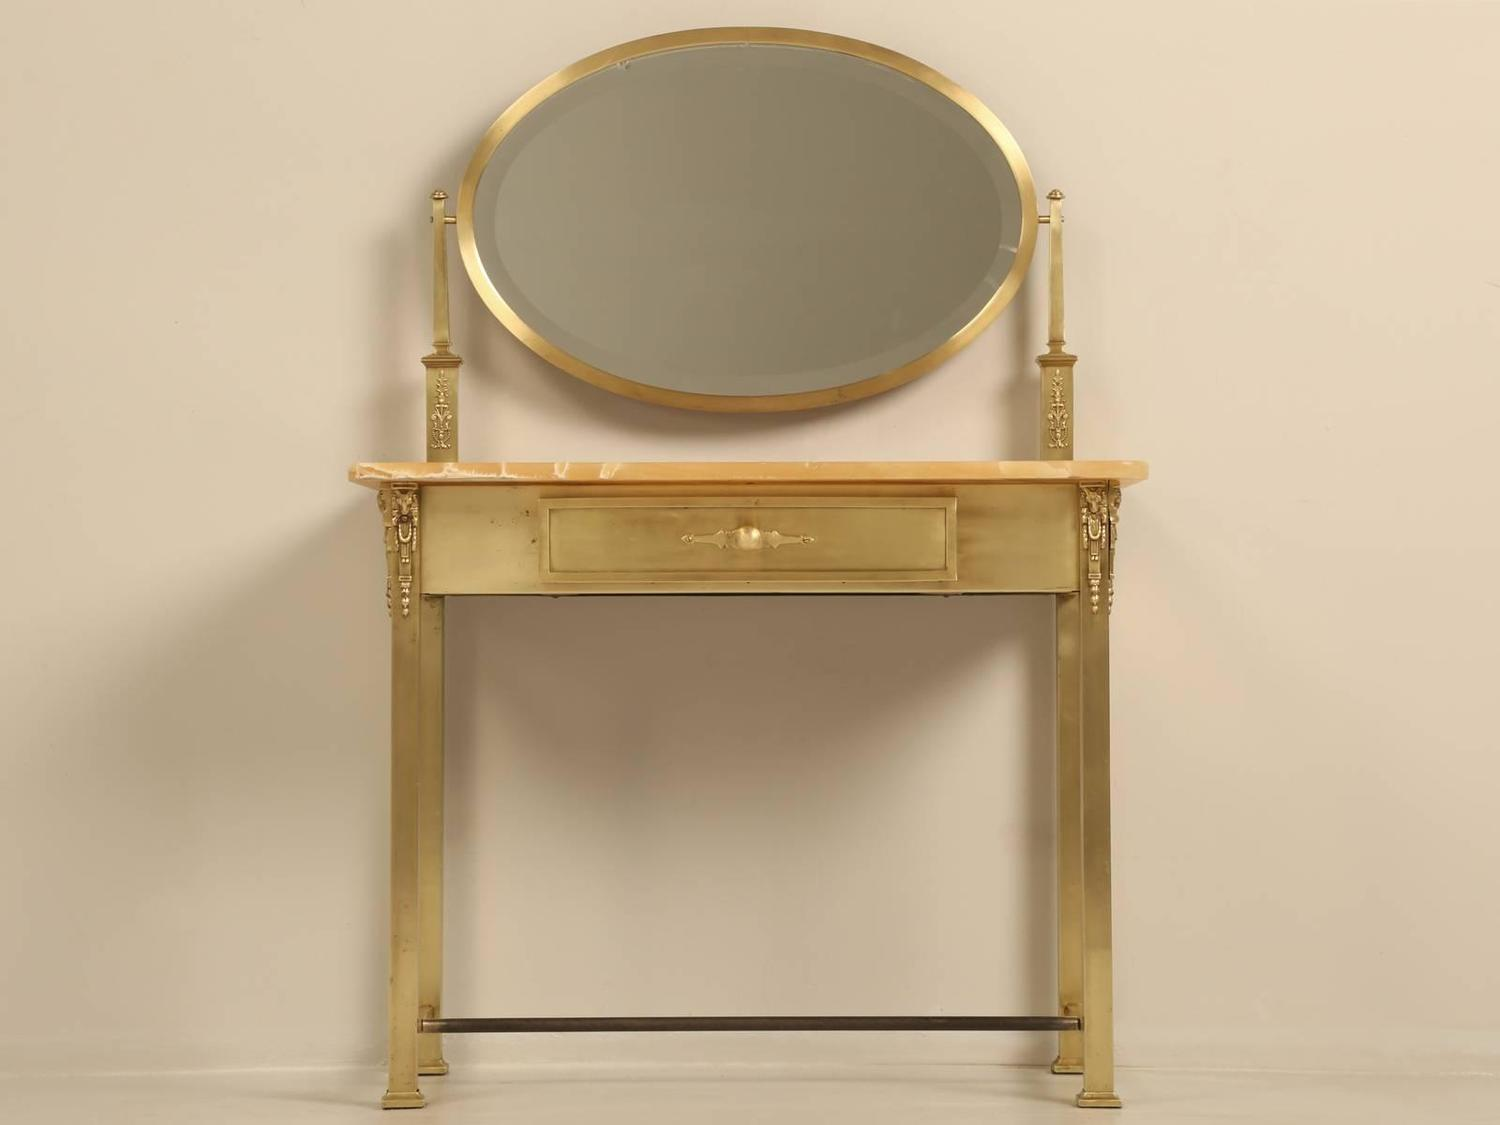 Original Design Straight From A Hollywood Stars Dressing Room Found By OliviaSmithist4 I Love This Modern Bathroom Mirror  Put On Your Makeup Like A True Movie Star By Using This Vanity Dressing Table With Mirror Wood Craftsmanship